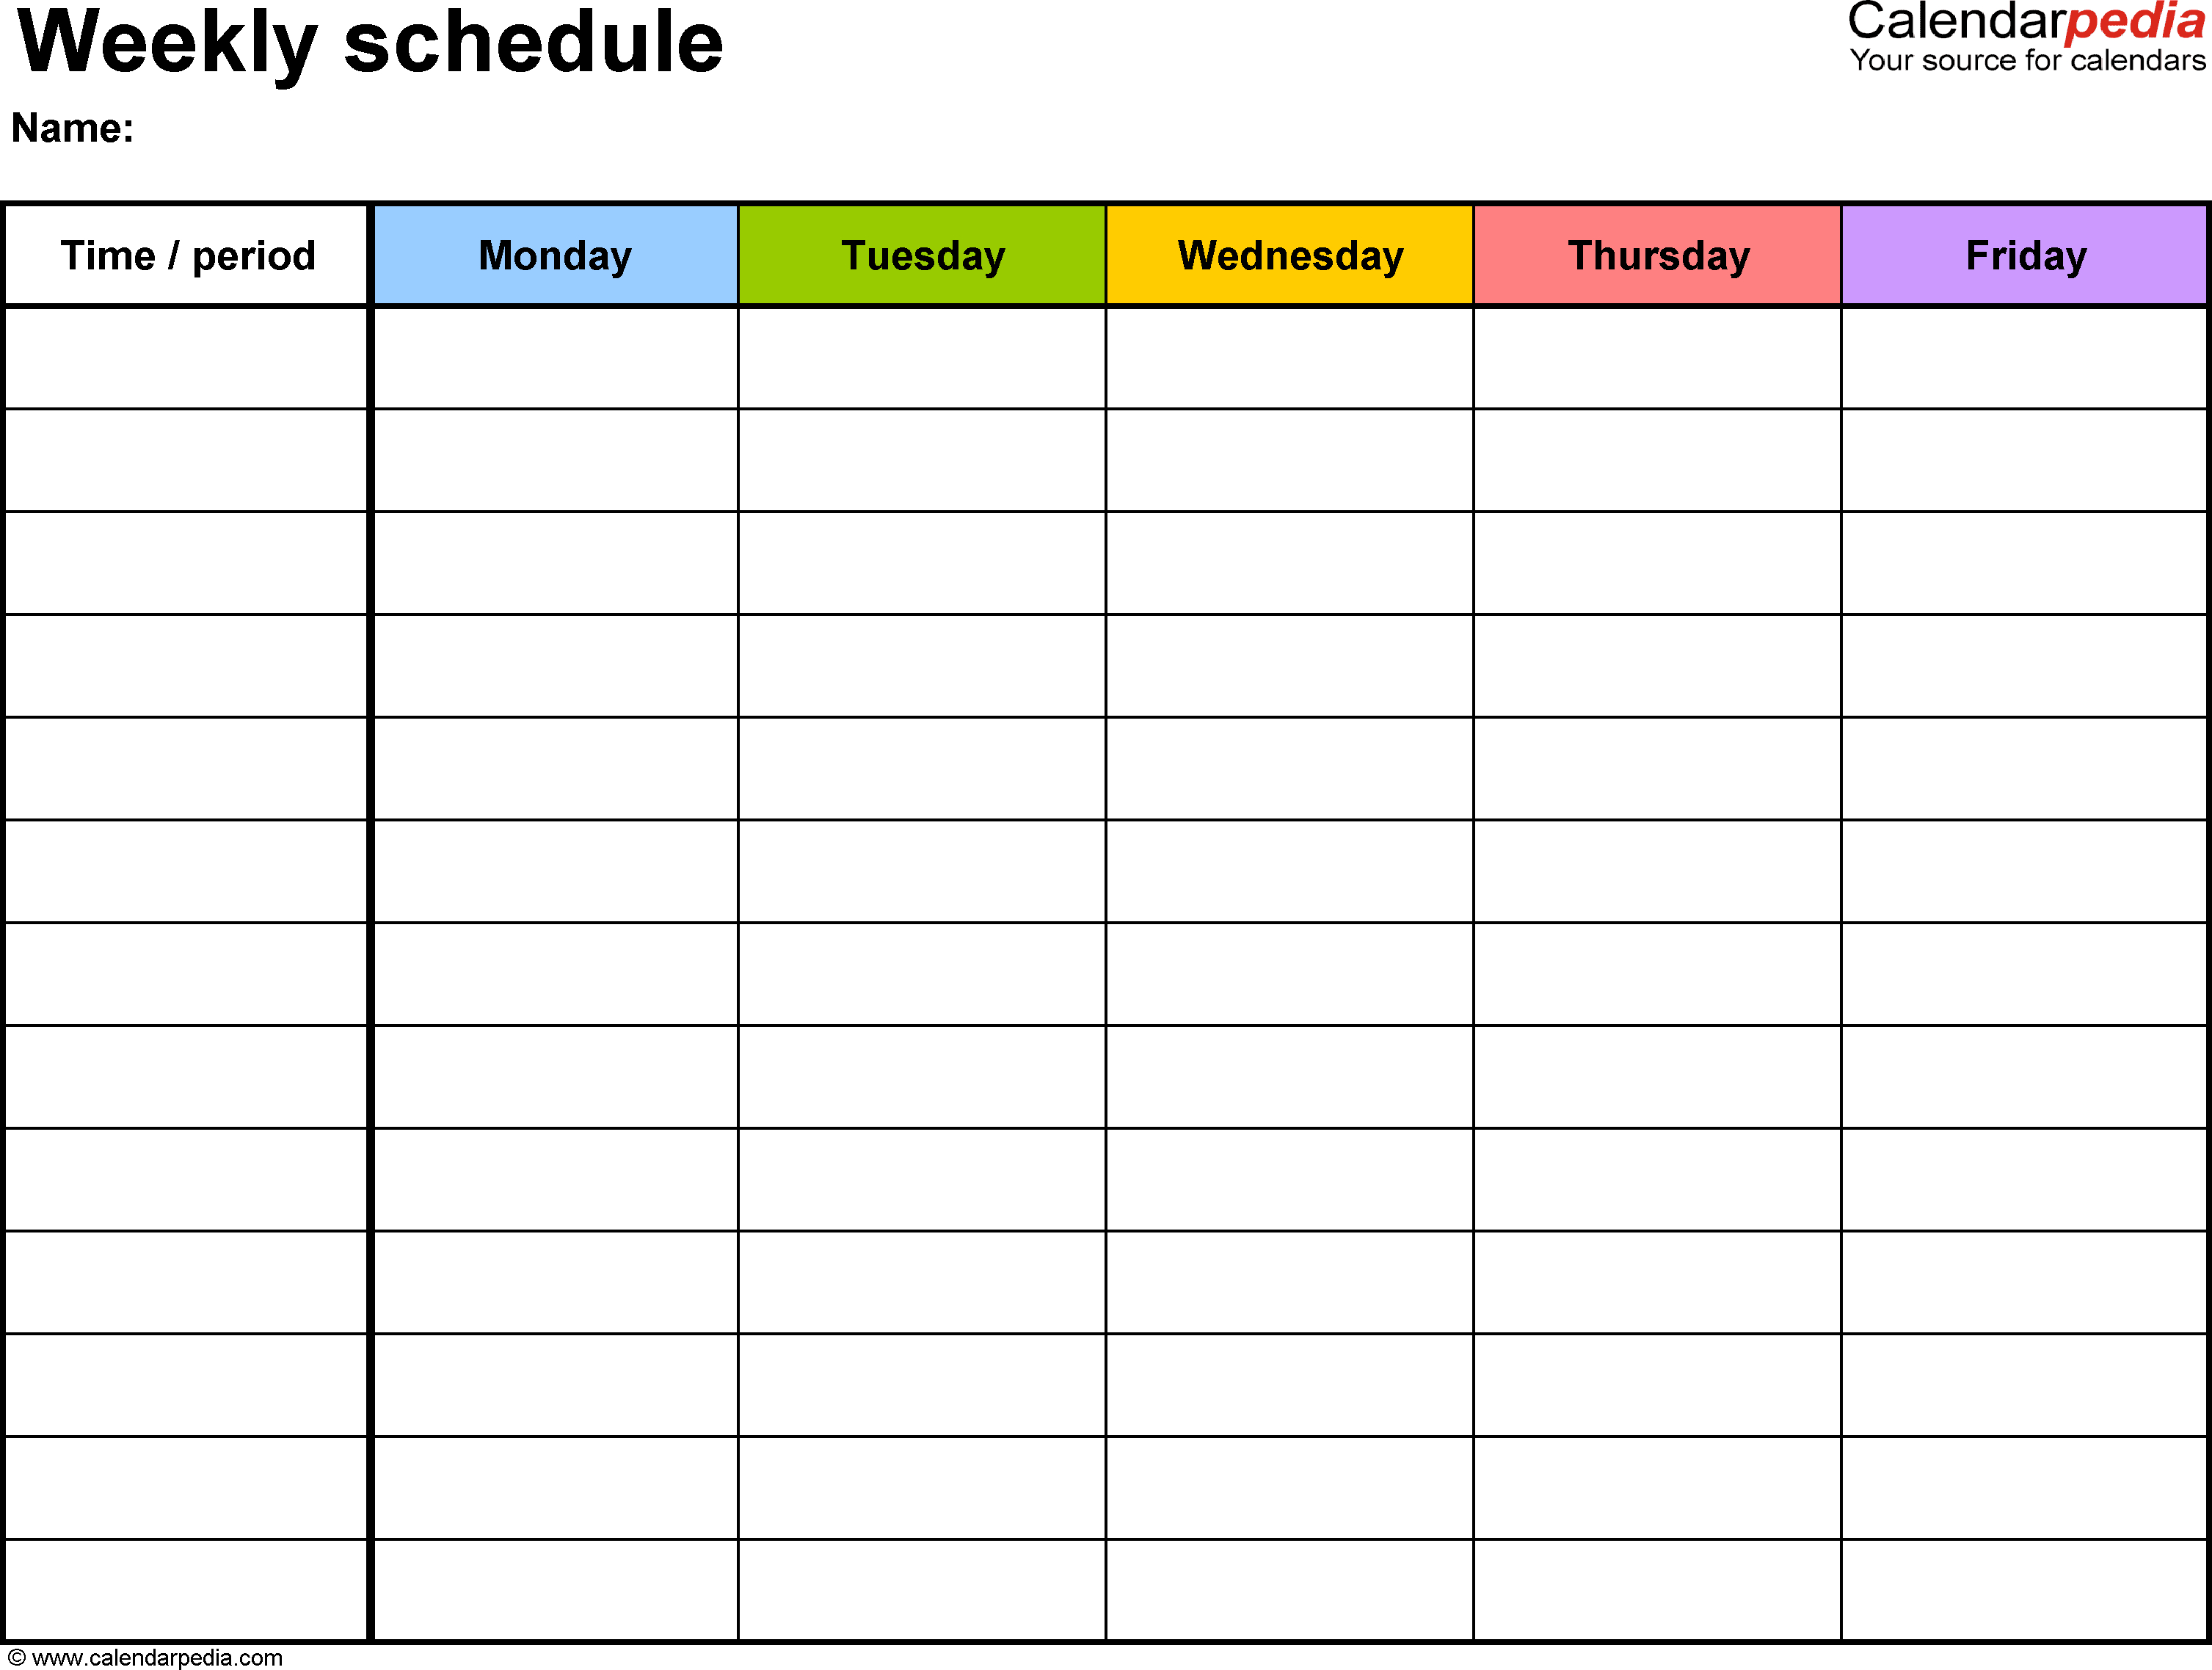 Weekly Calendar With Time - Wpa.wpart.co inside Formatable Excel Monthly Calender 2020